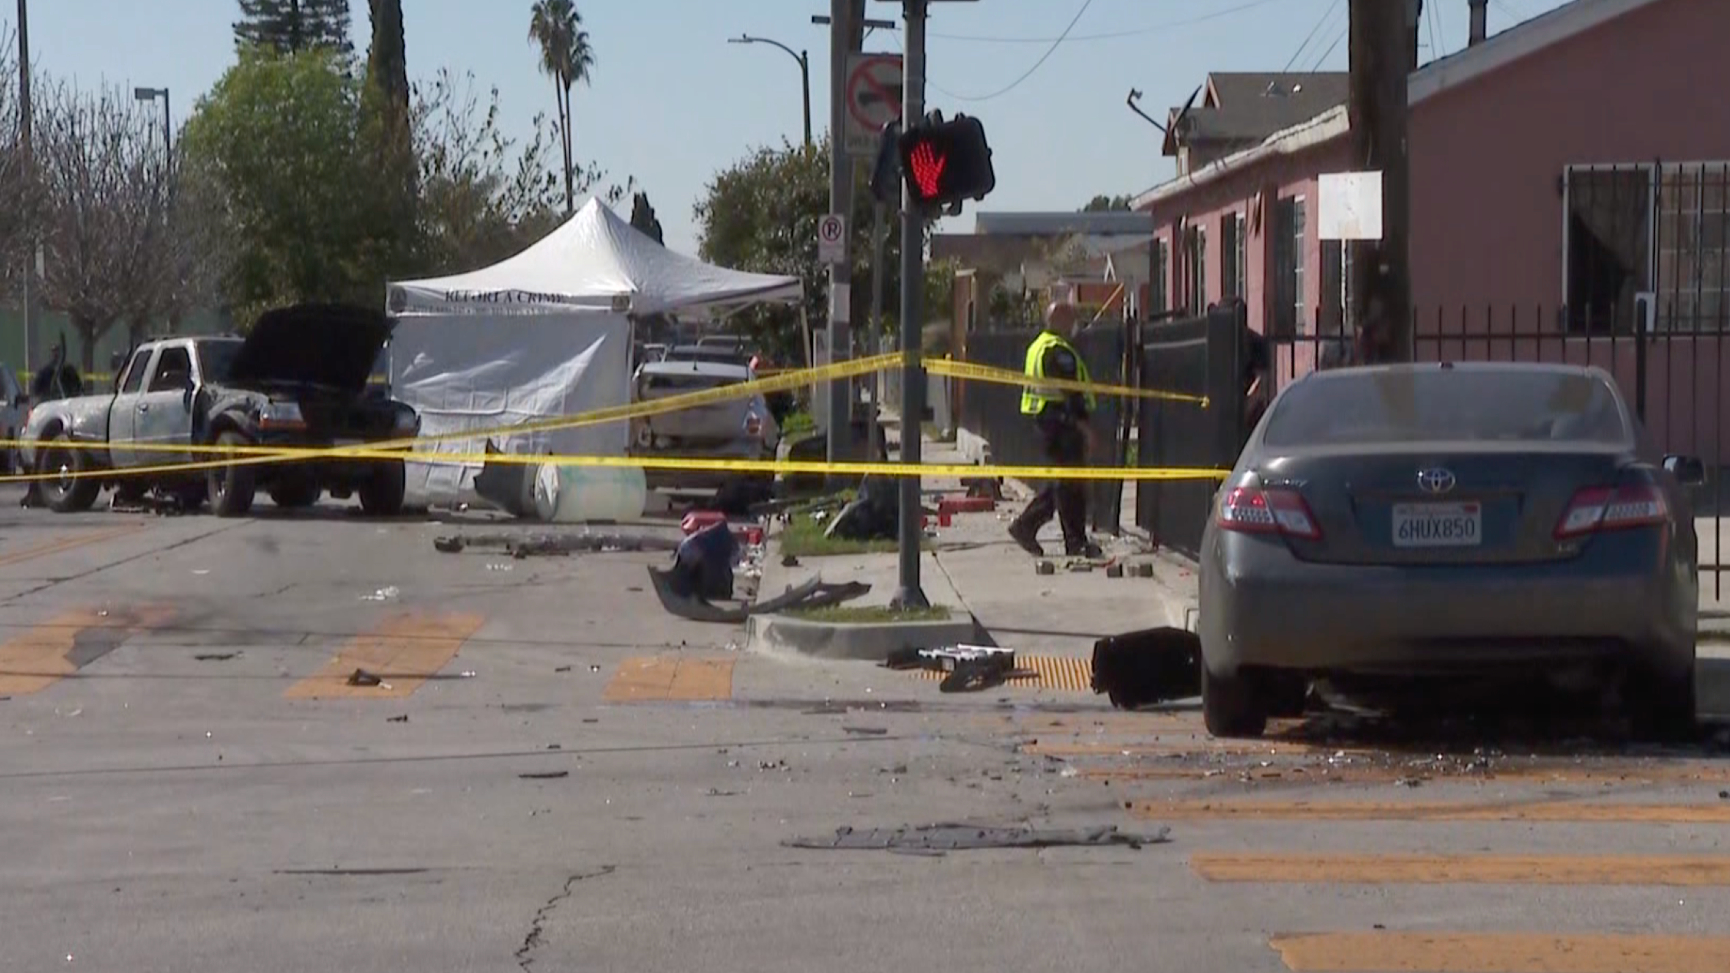 The scene of a crash in South Los Angeles is taped off for investigation after the pickup fatally struck a pedestrian and its occupants fled the scene on Feb. 24, 2021. (KTLA)